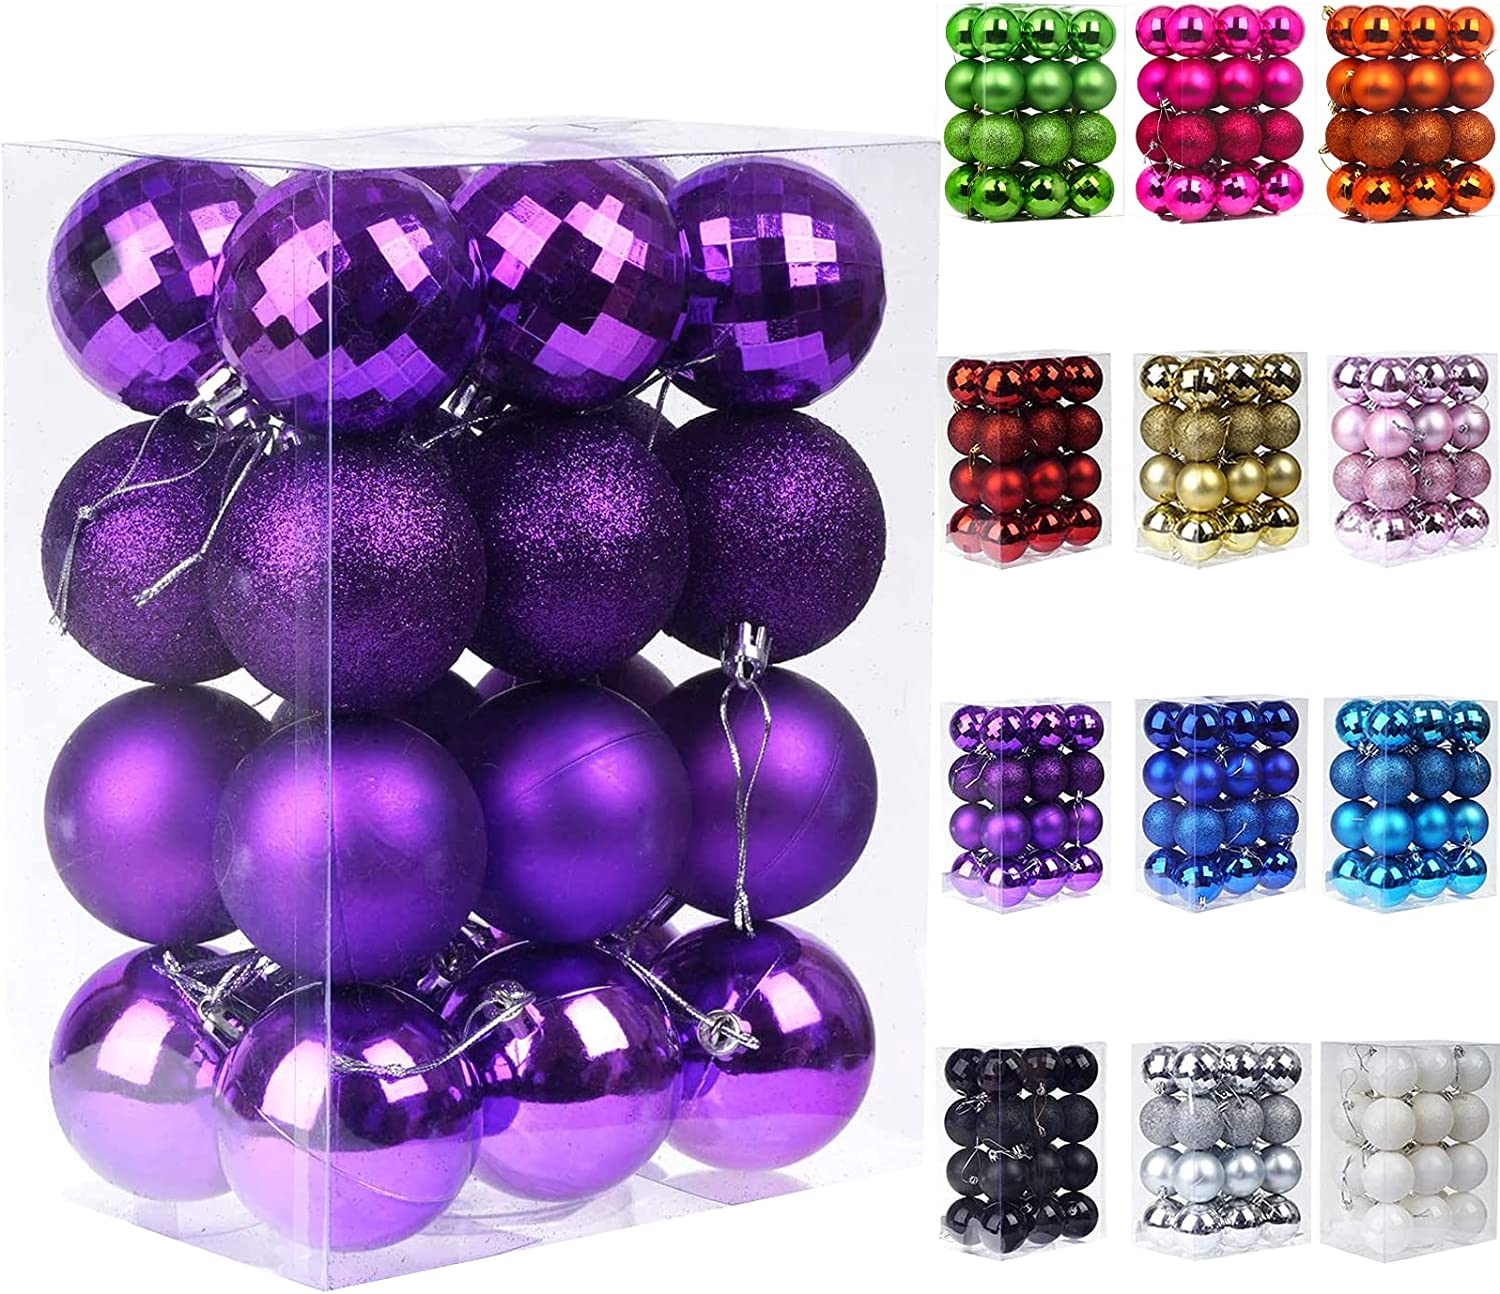 Emopeak 24Pcs Christmas Balls Ornaments for Xmas Christmas Tree - 4 Style Shatterproof Christmas Tree Decorations Hanging Ball for Holiday Wedding Party Decoration (Purple, 1.6